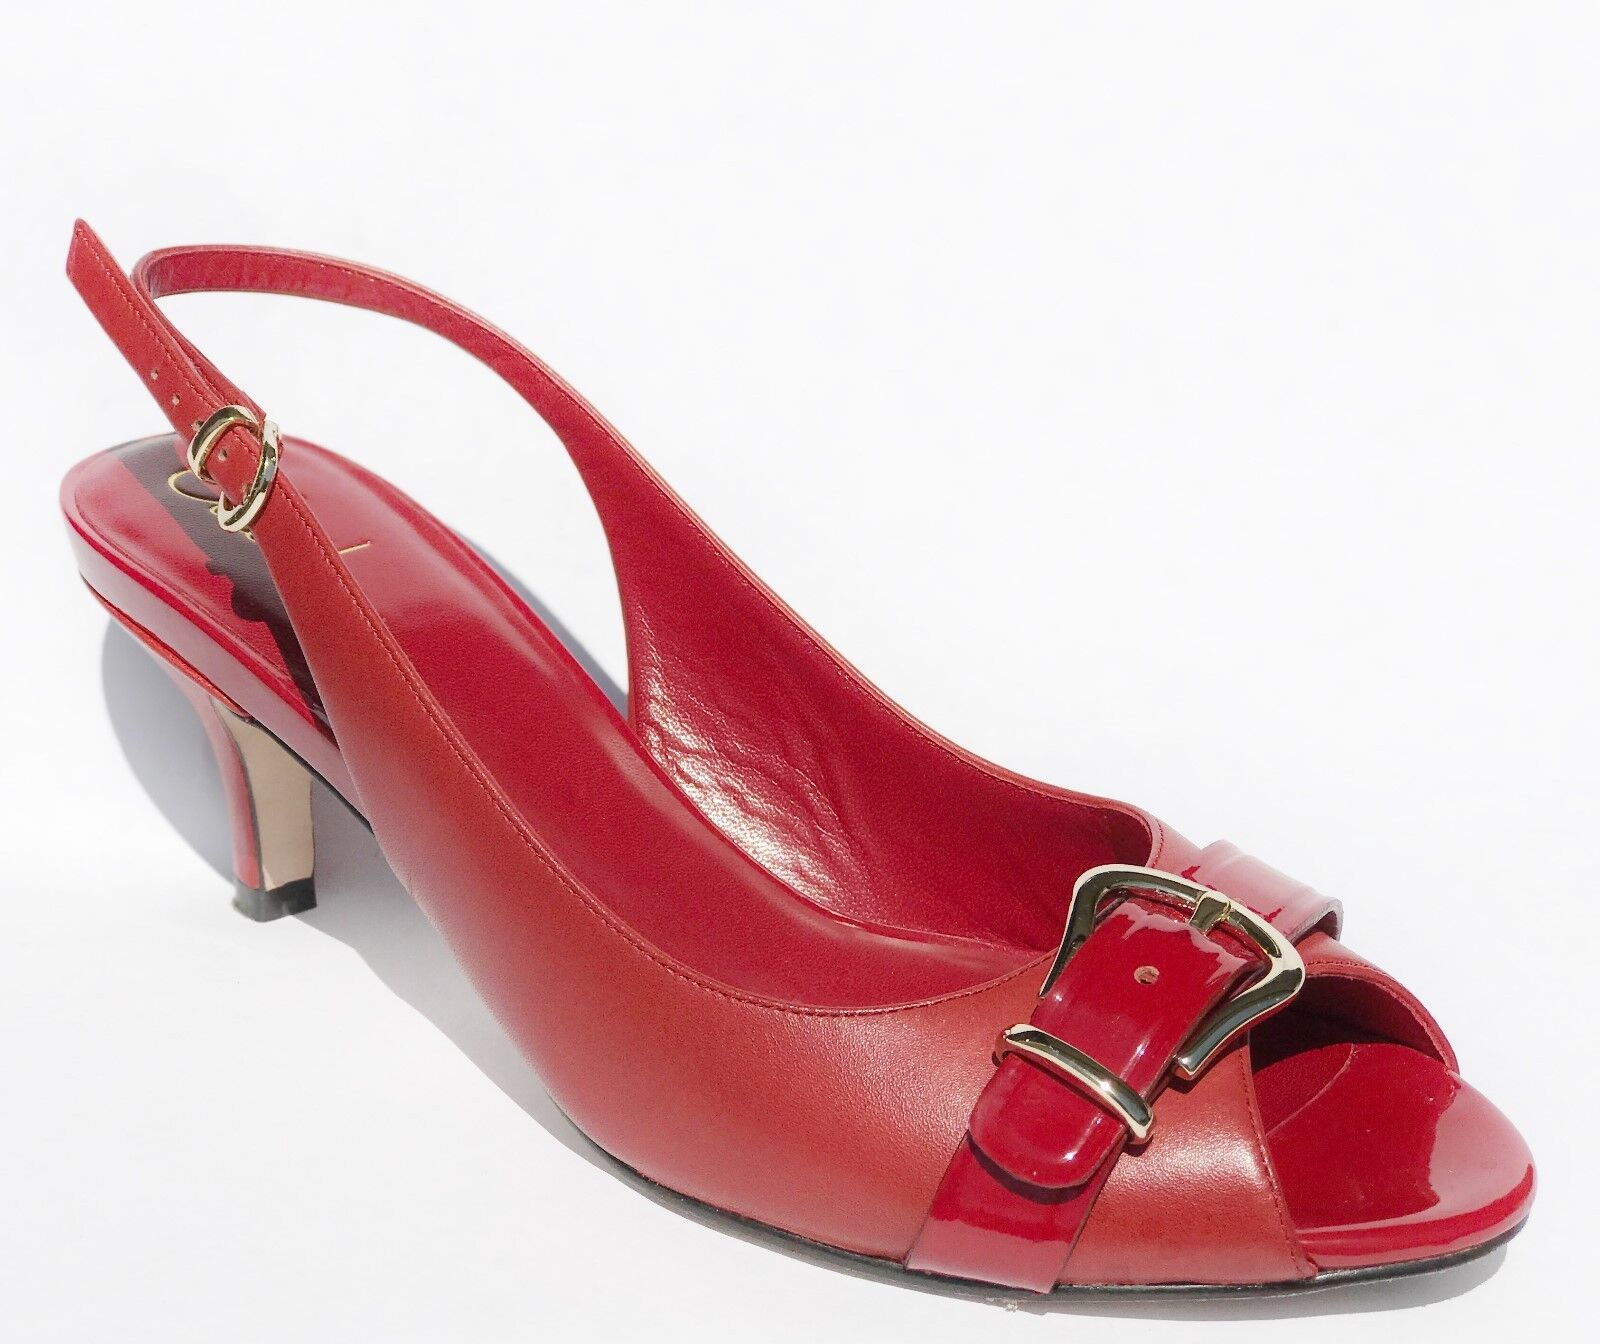 180 Cole Haan Air Lainey OT OT OT Slingback Leather schuhe damen rot 9 51d9fe